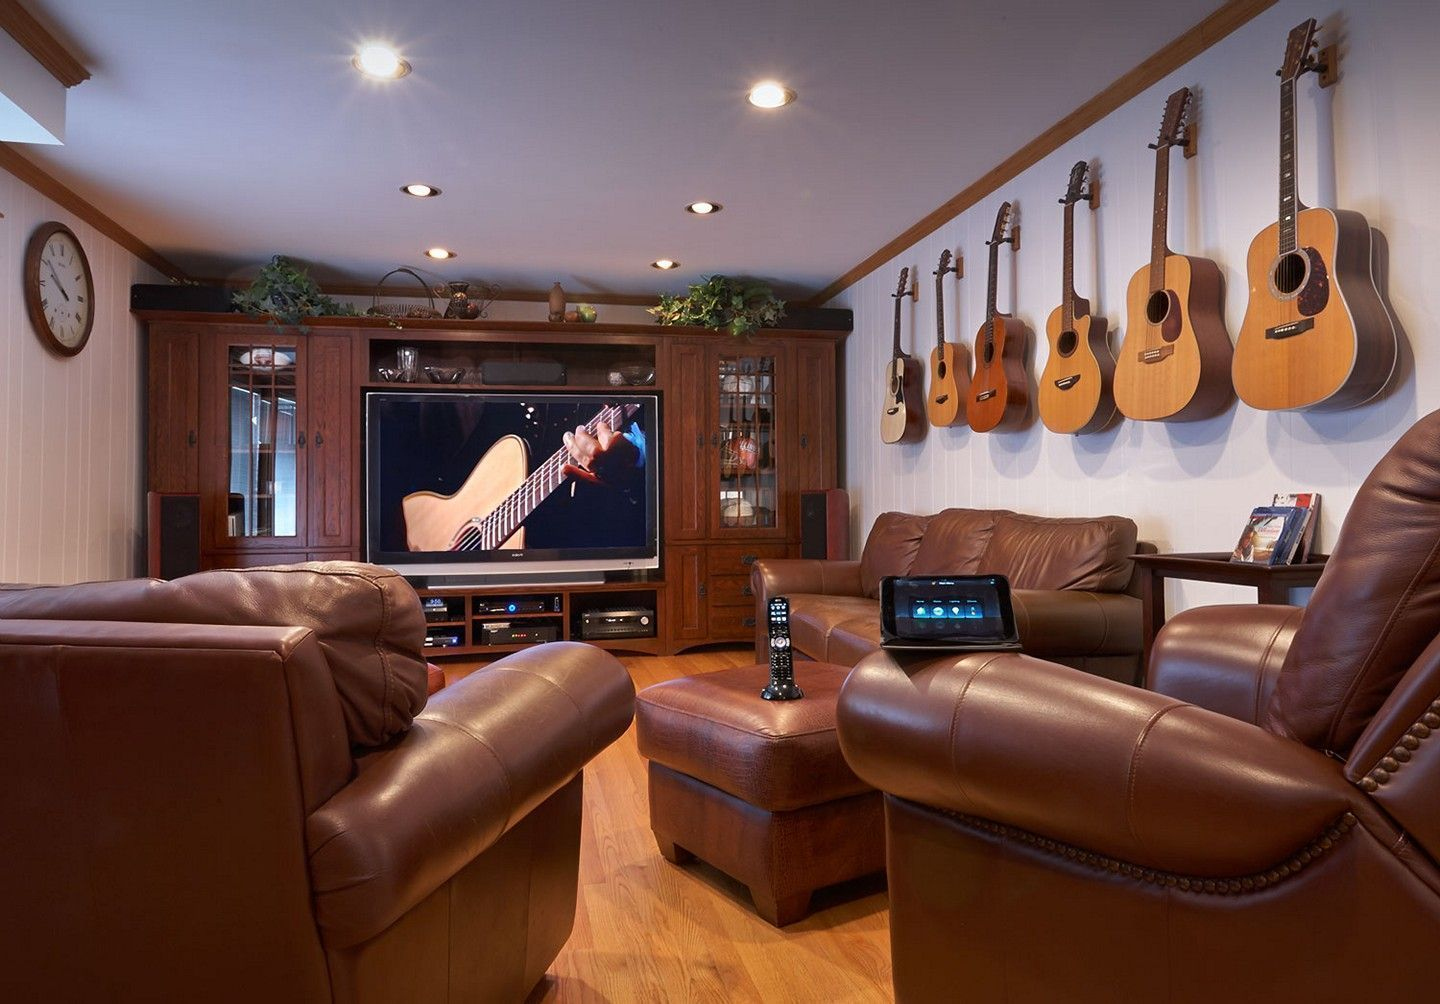 Best Photo Images And Pictures About Movie Room Ideas Movie Room Ideas Diy Movie Room Ideas S